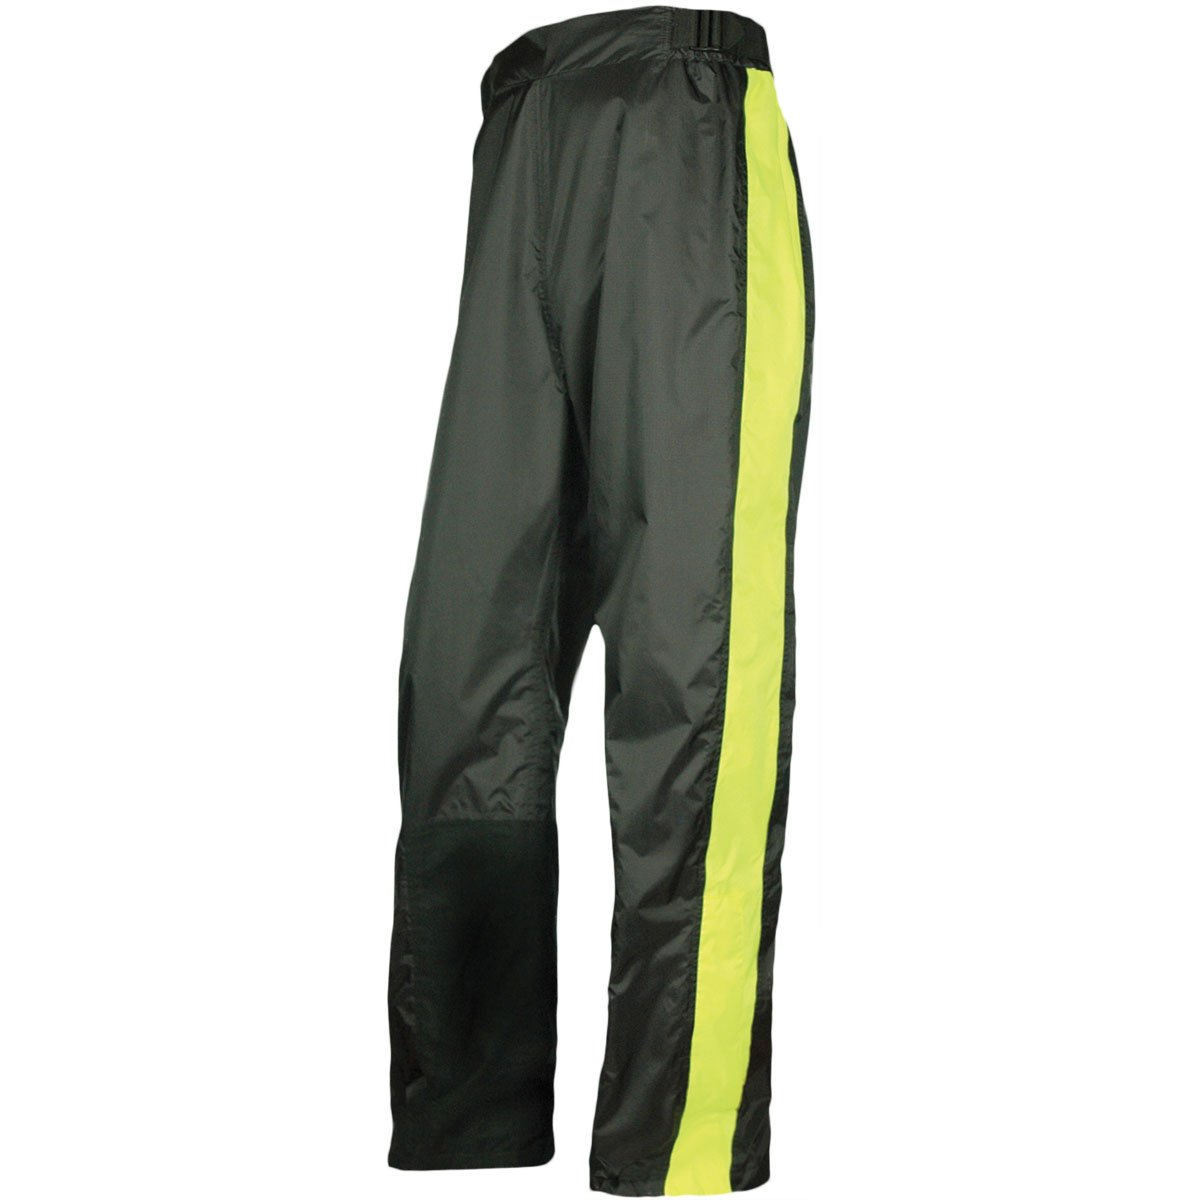 Olympia Horizon Rain Pants - Medium/Large/Black/Neon Yellow